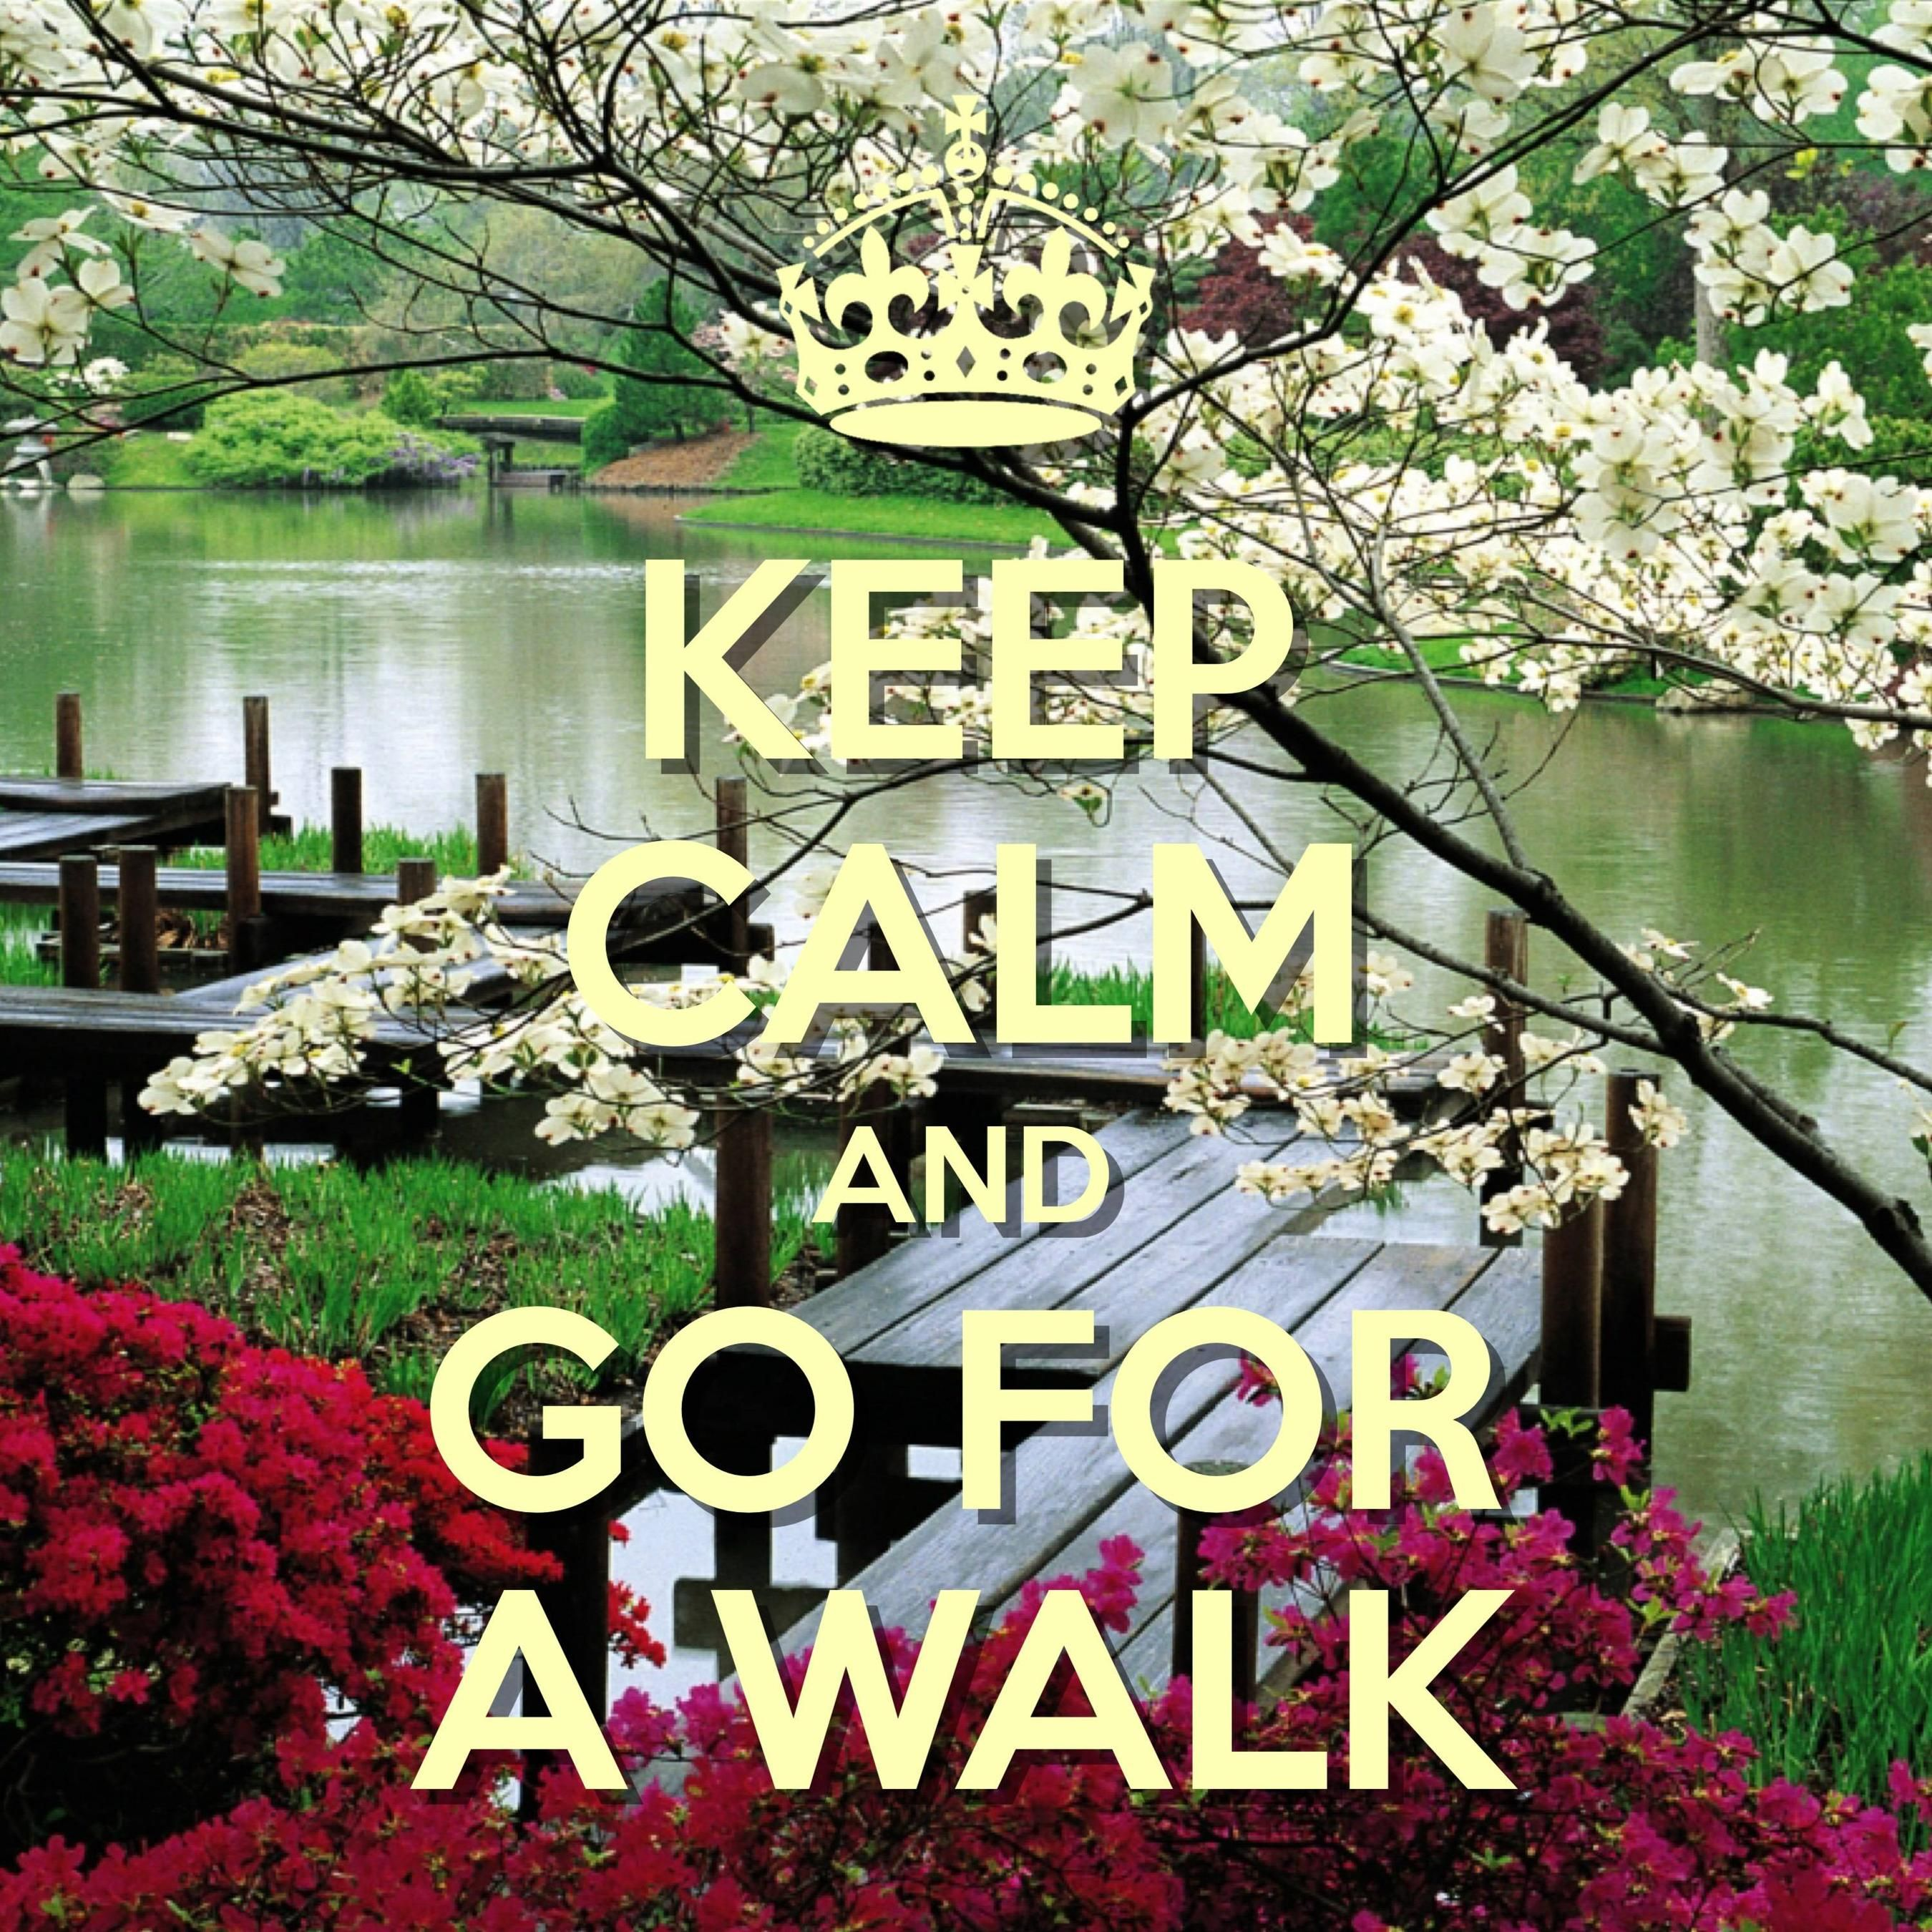 keep calm and go for a walk / created with Keep Calm and Carry On for iOS #keepcalm #skydive #walkinthepark